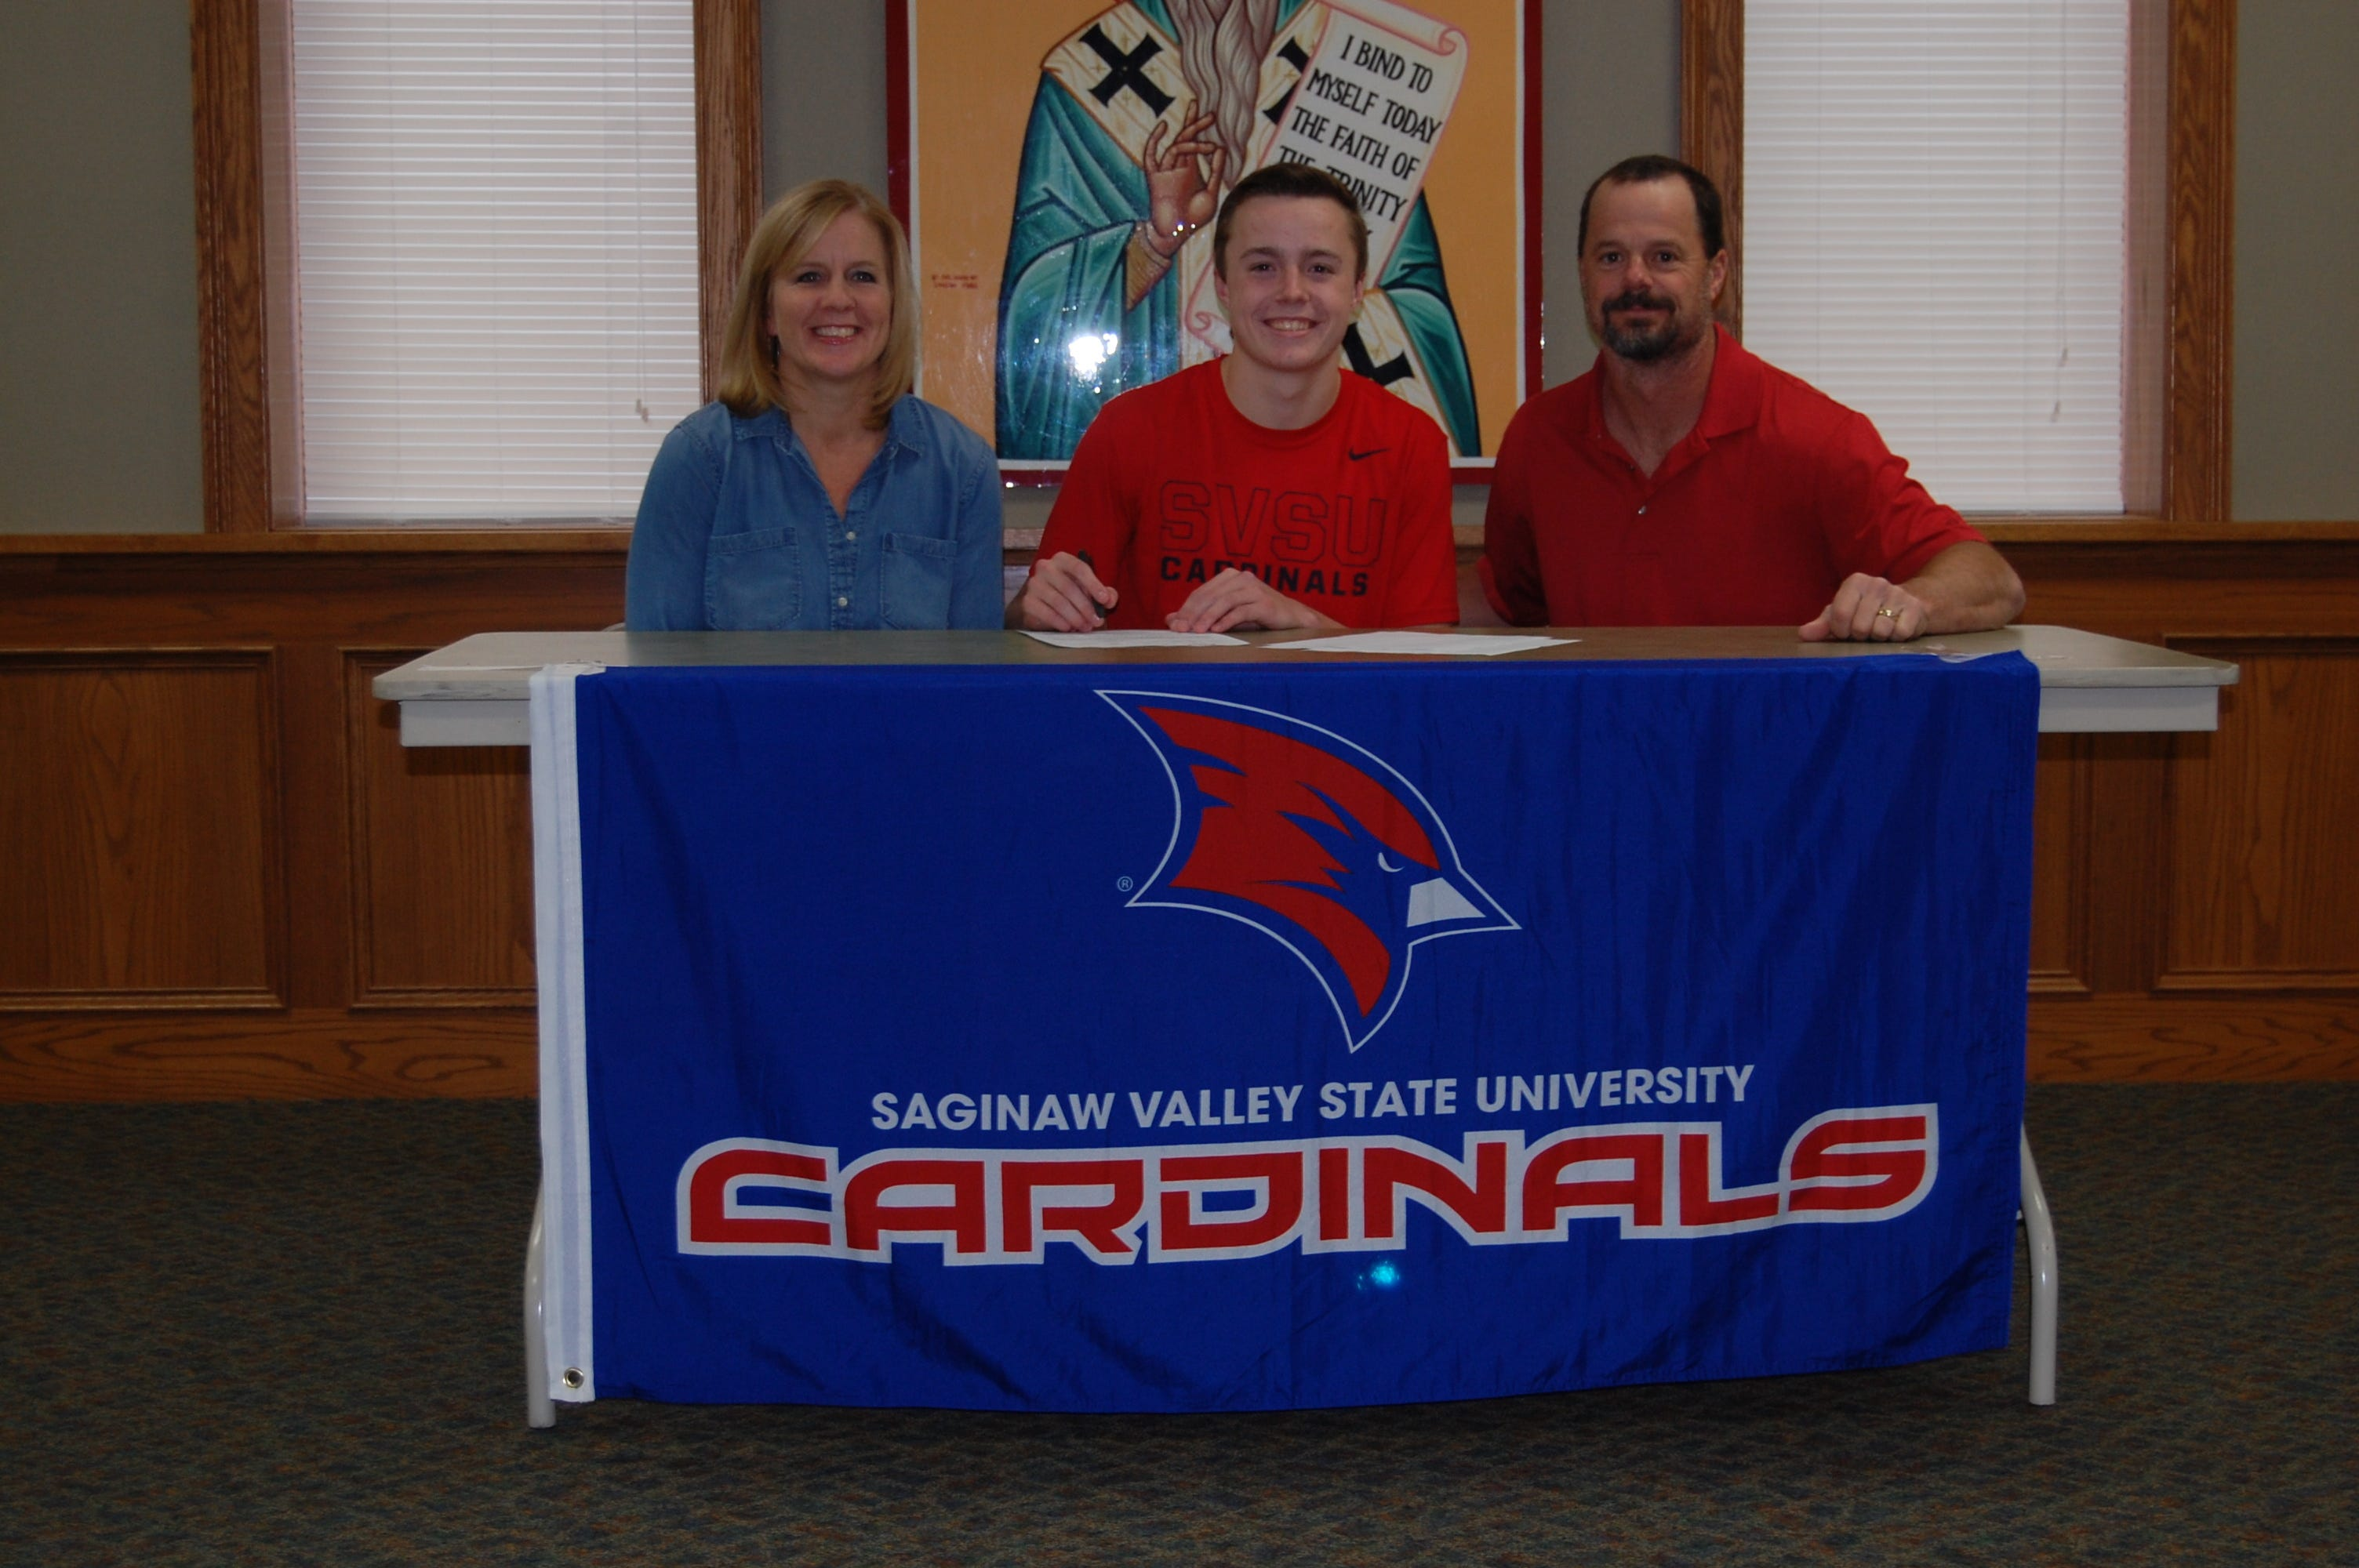 Brandon Scheurer, a senior at Portland St. Patrick School, sitting with parents Jill and Mark, signed late last year a letter of intent to play baseball at Saginaw Valley State University. He remains committed to the school.